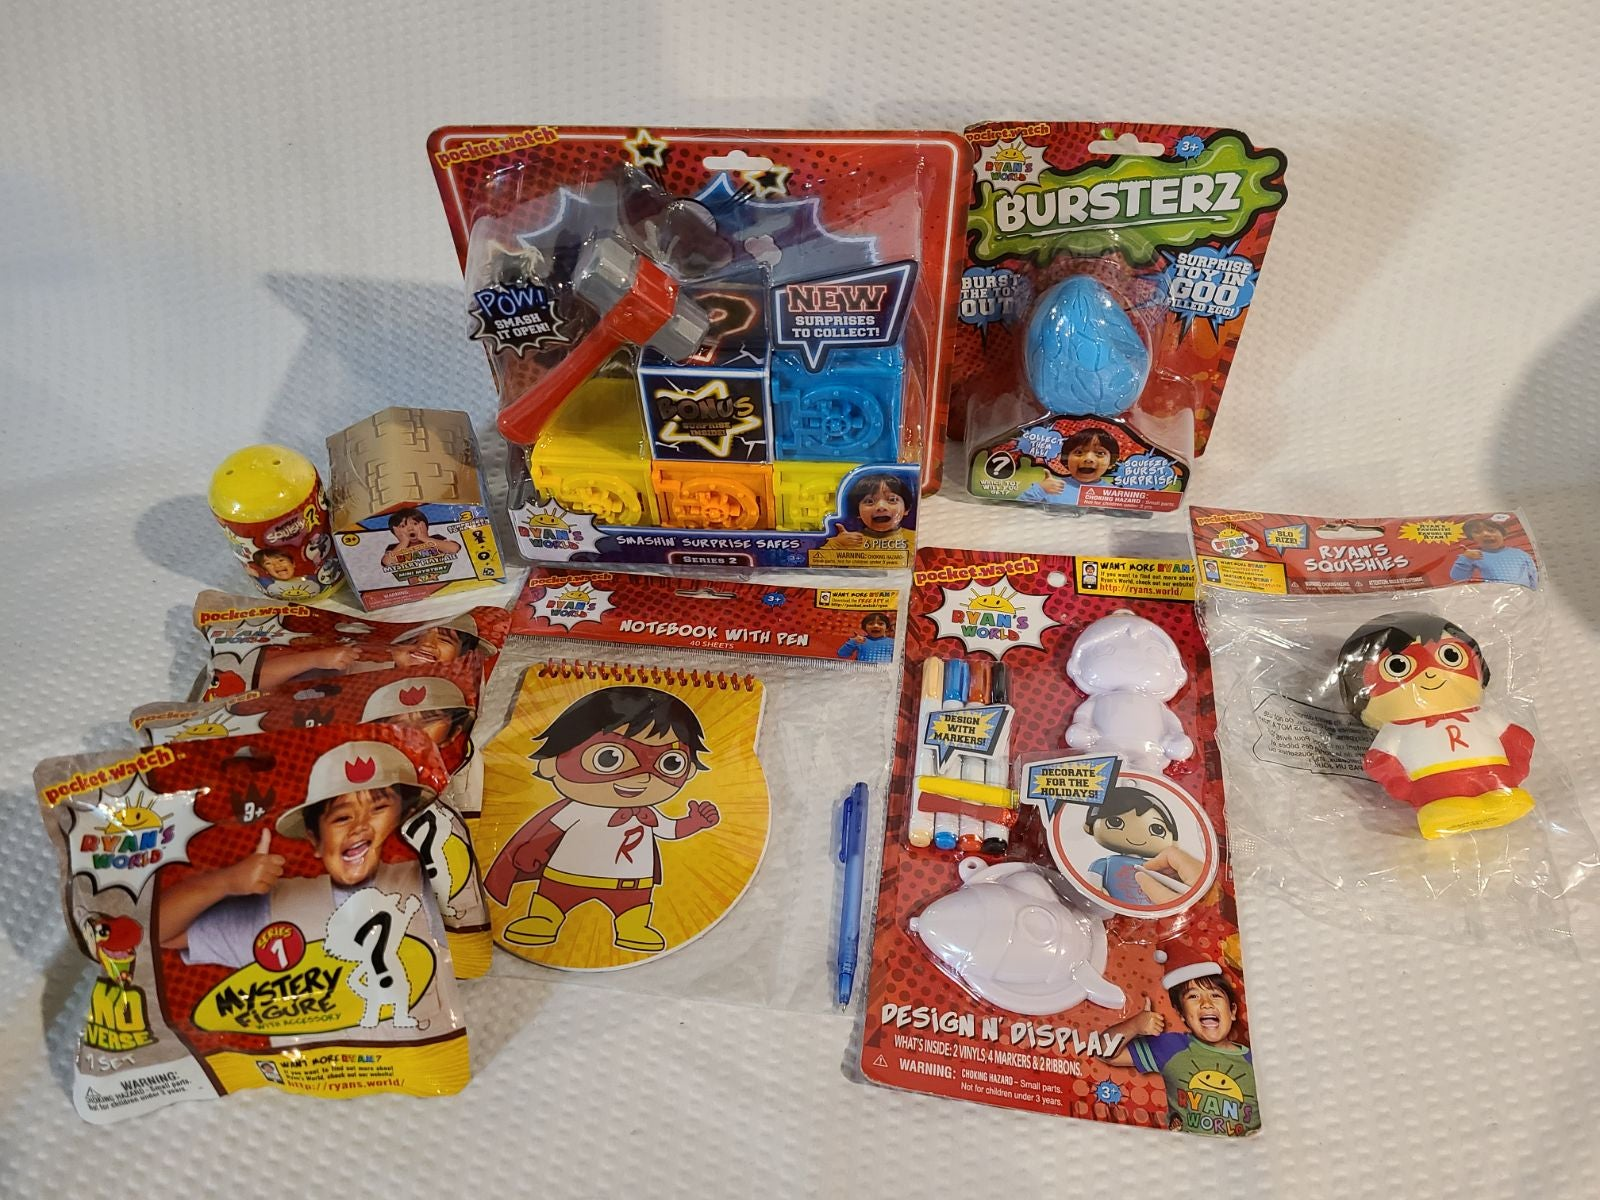 Ryan's World Toy Lot 10 peices